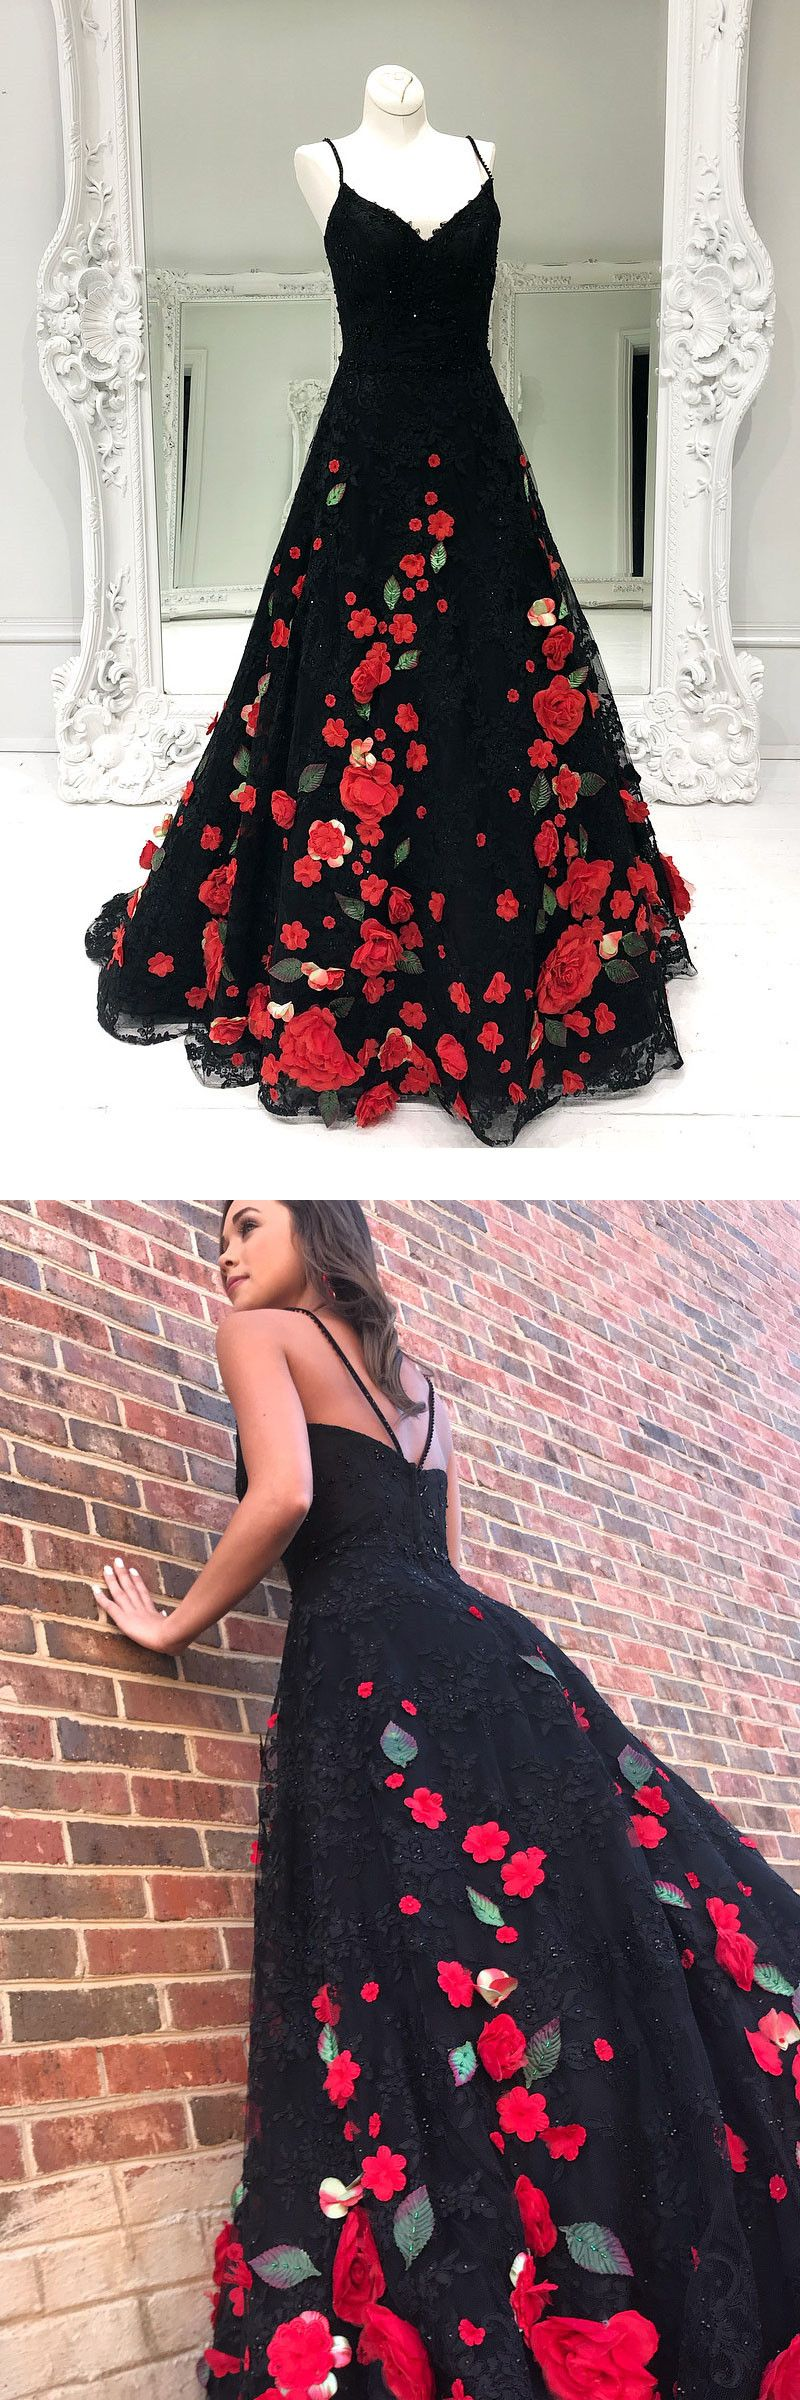 Black lace long prom dress with red floral latest long prom